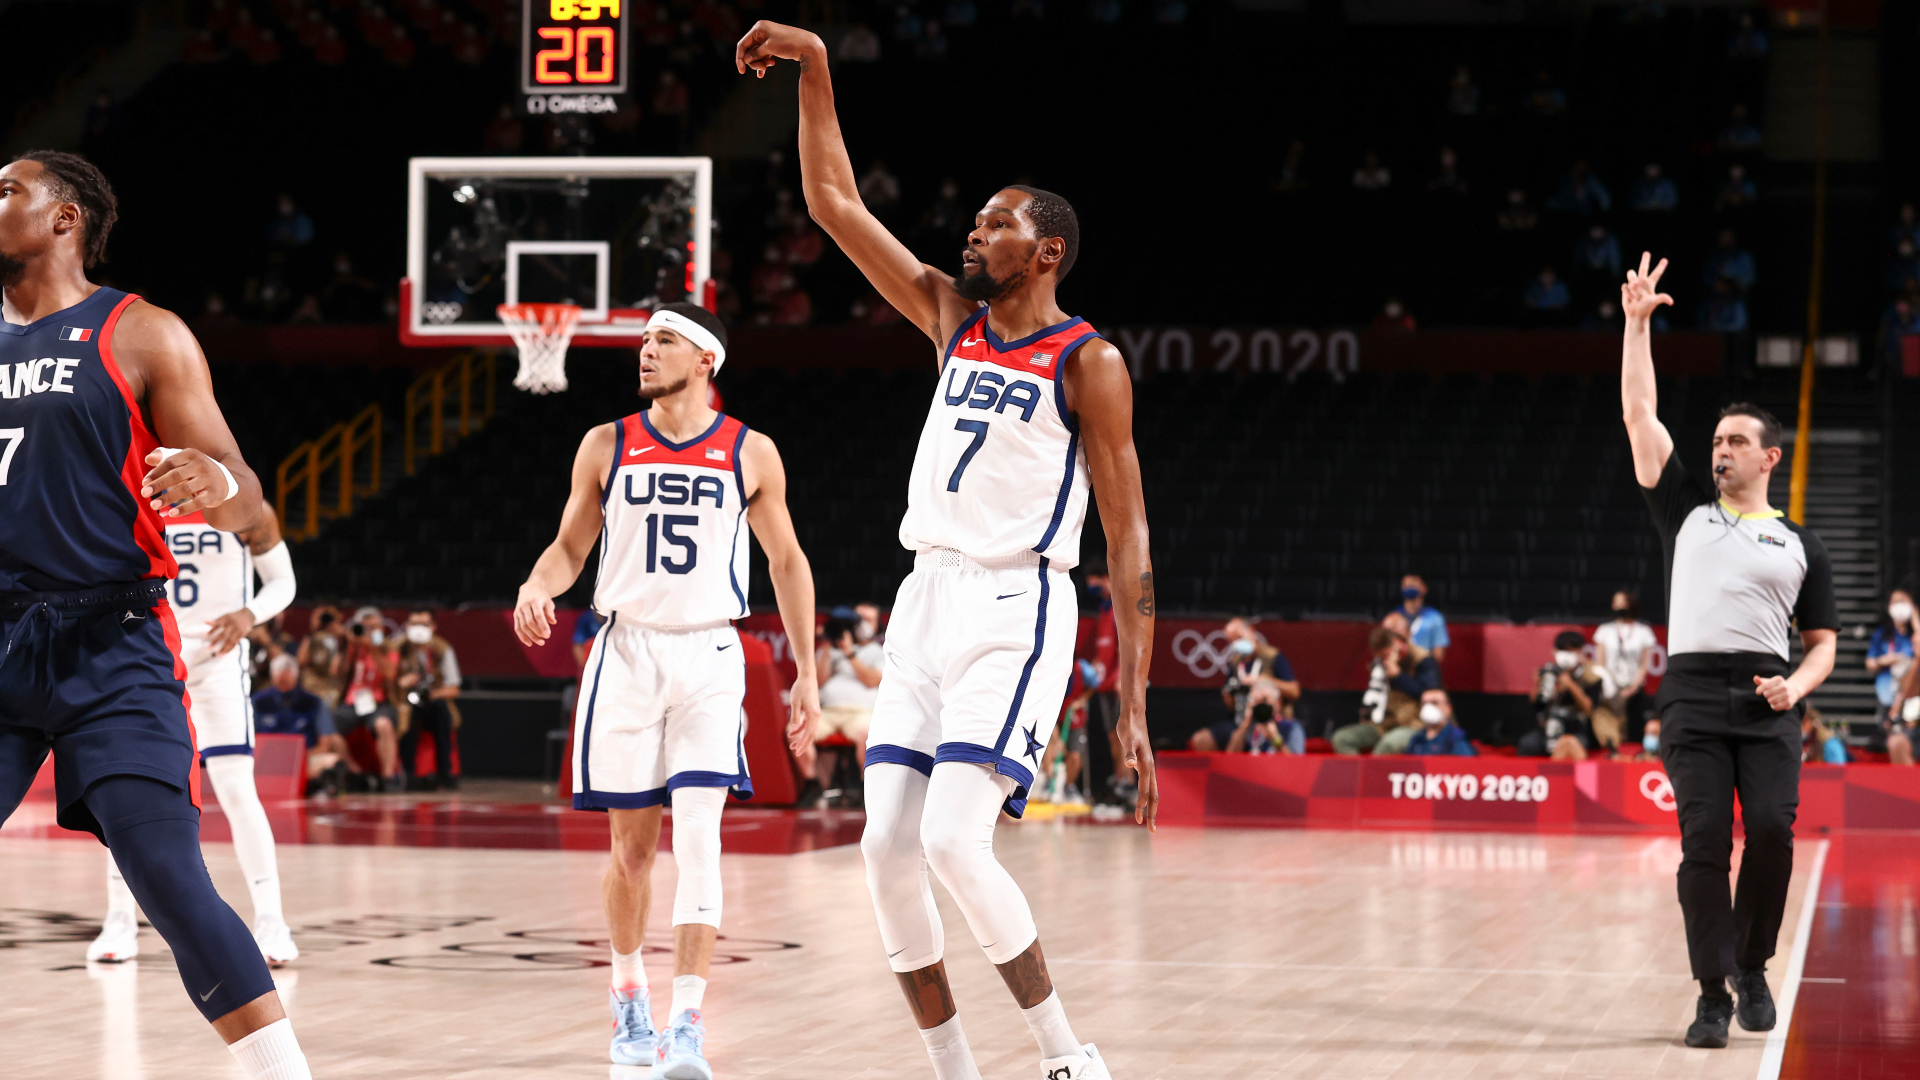 United States vs France Live Statistics Commentary and How to